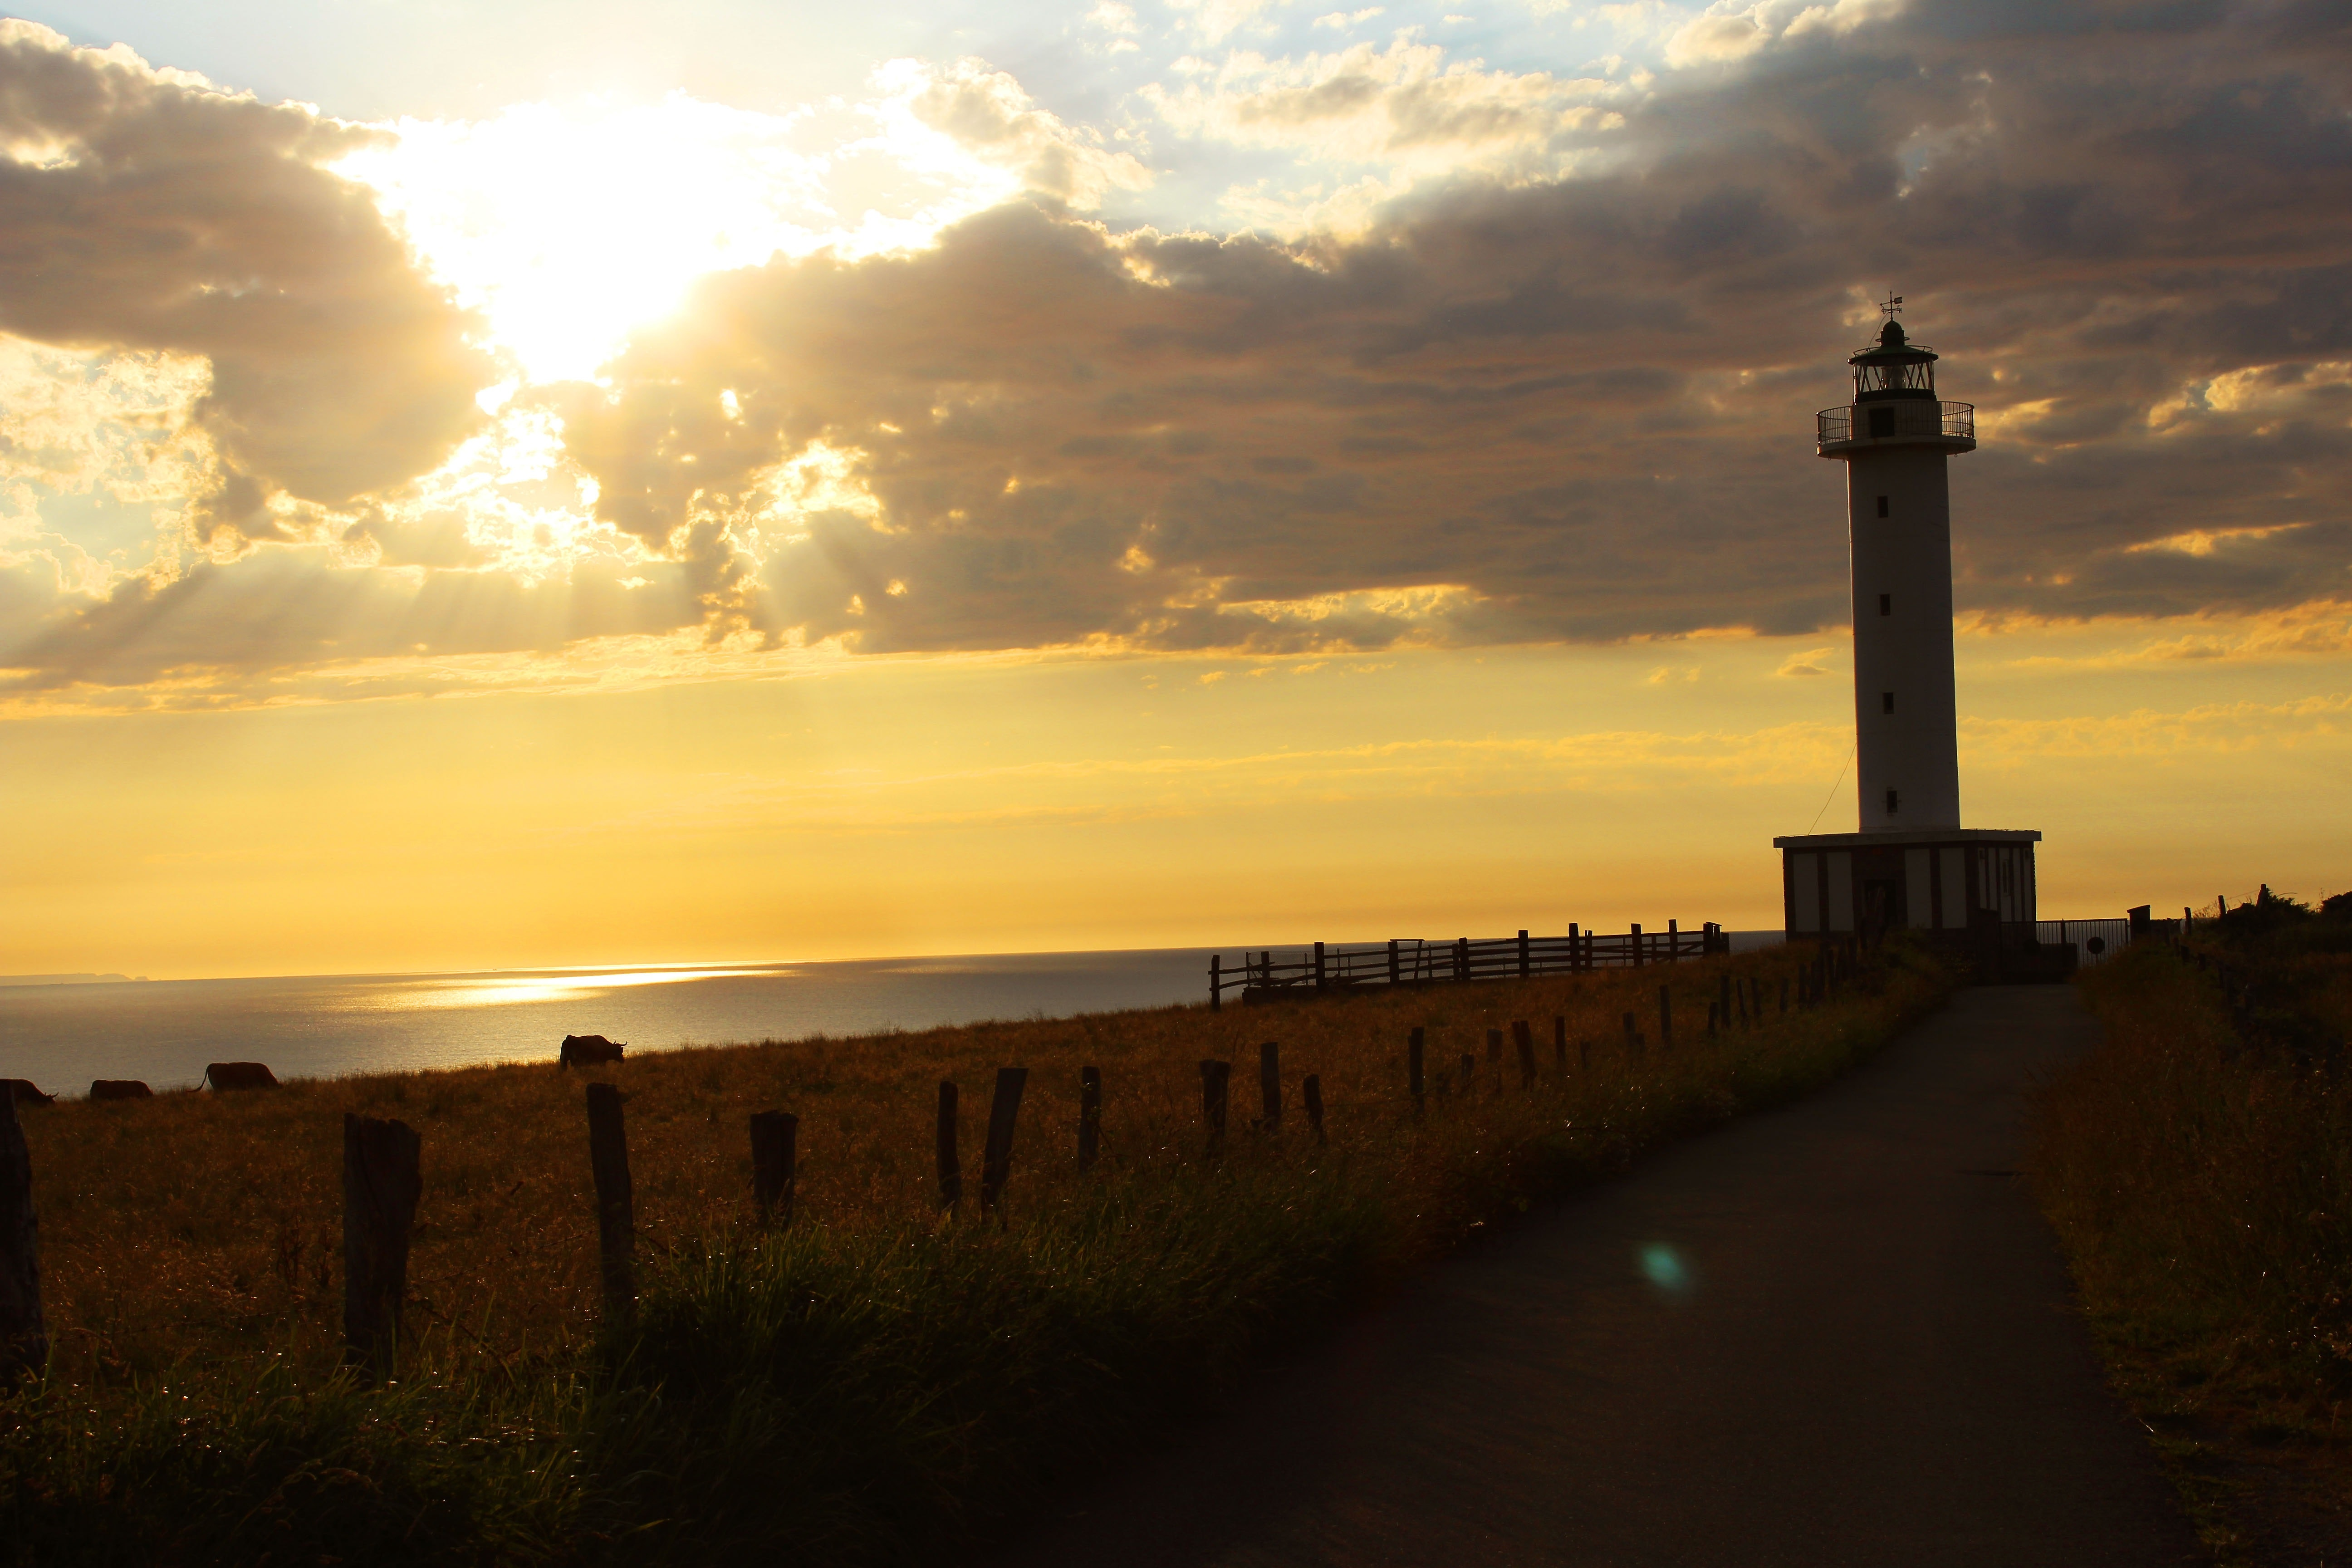 Lighthouse near ocean during golden hour photo